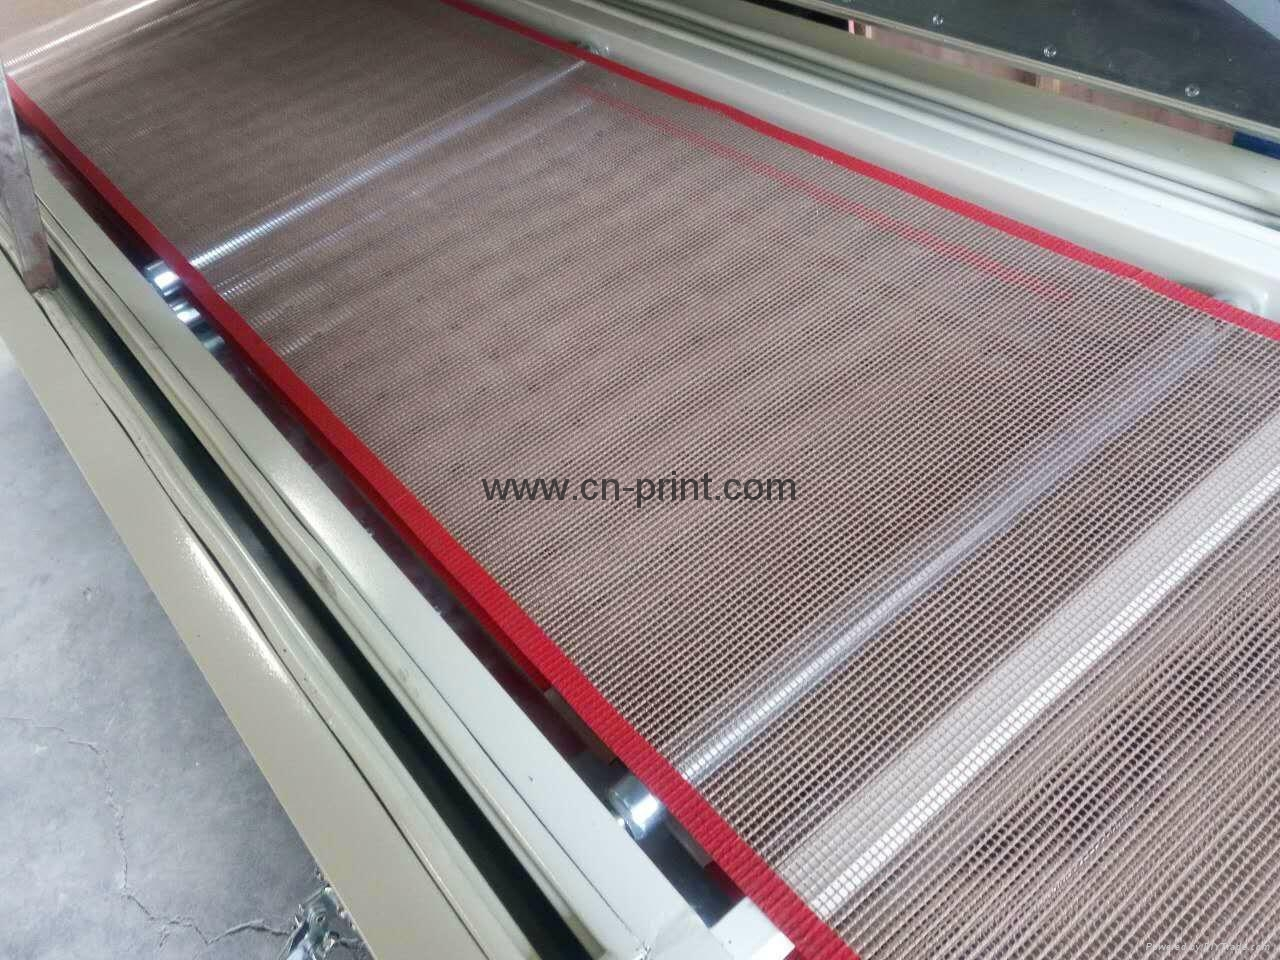 IR hot drying tunnel oven